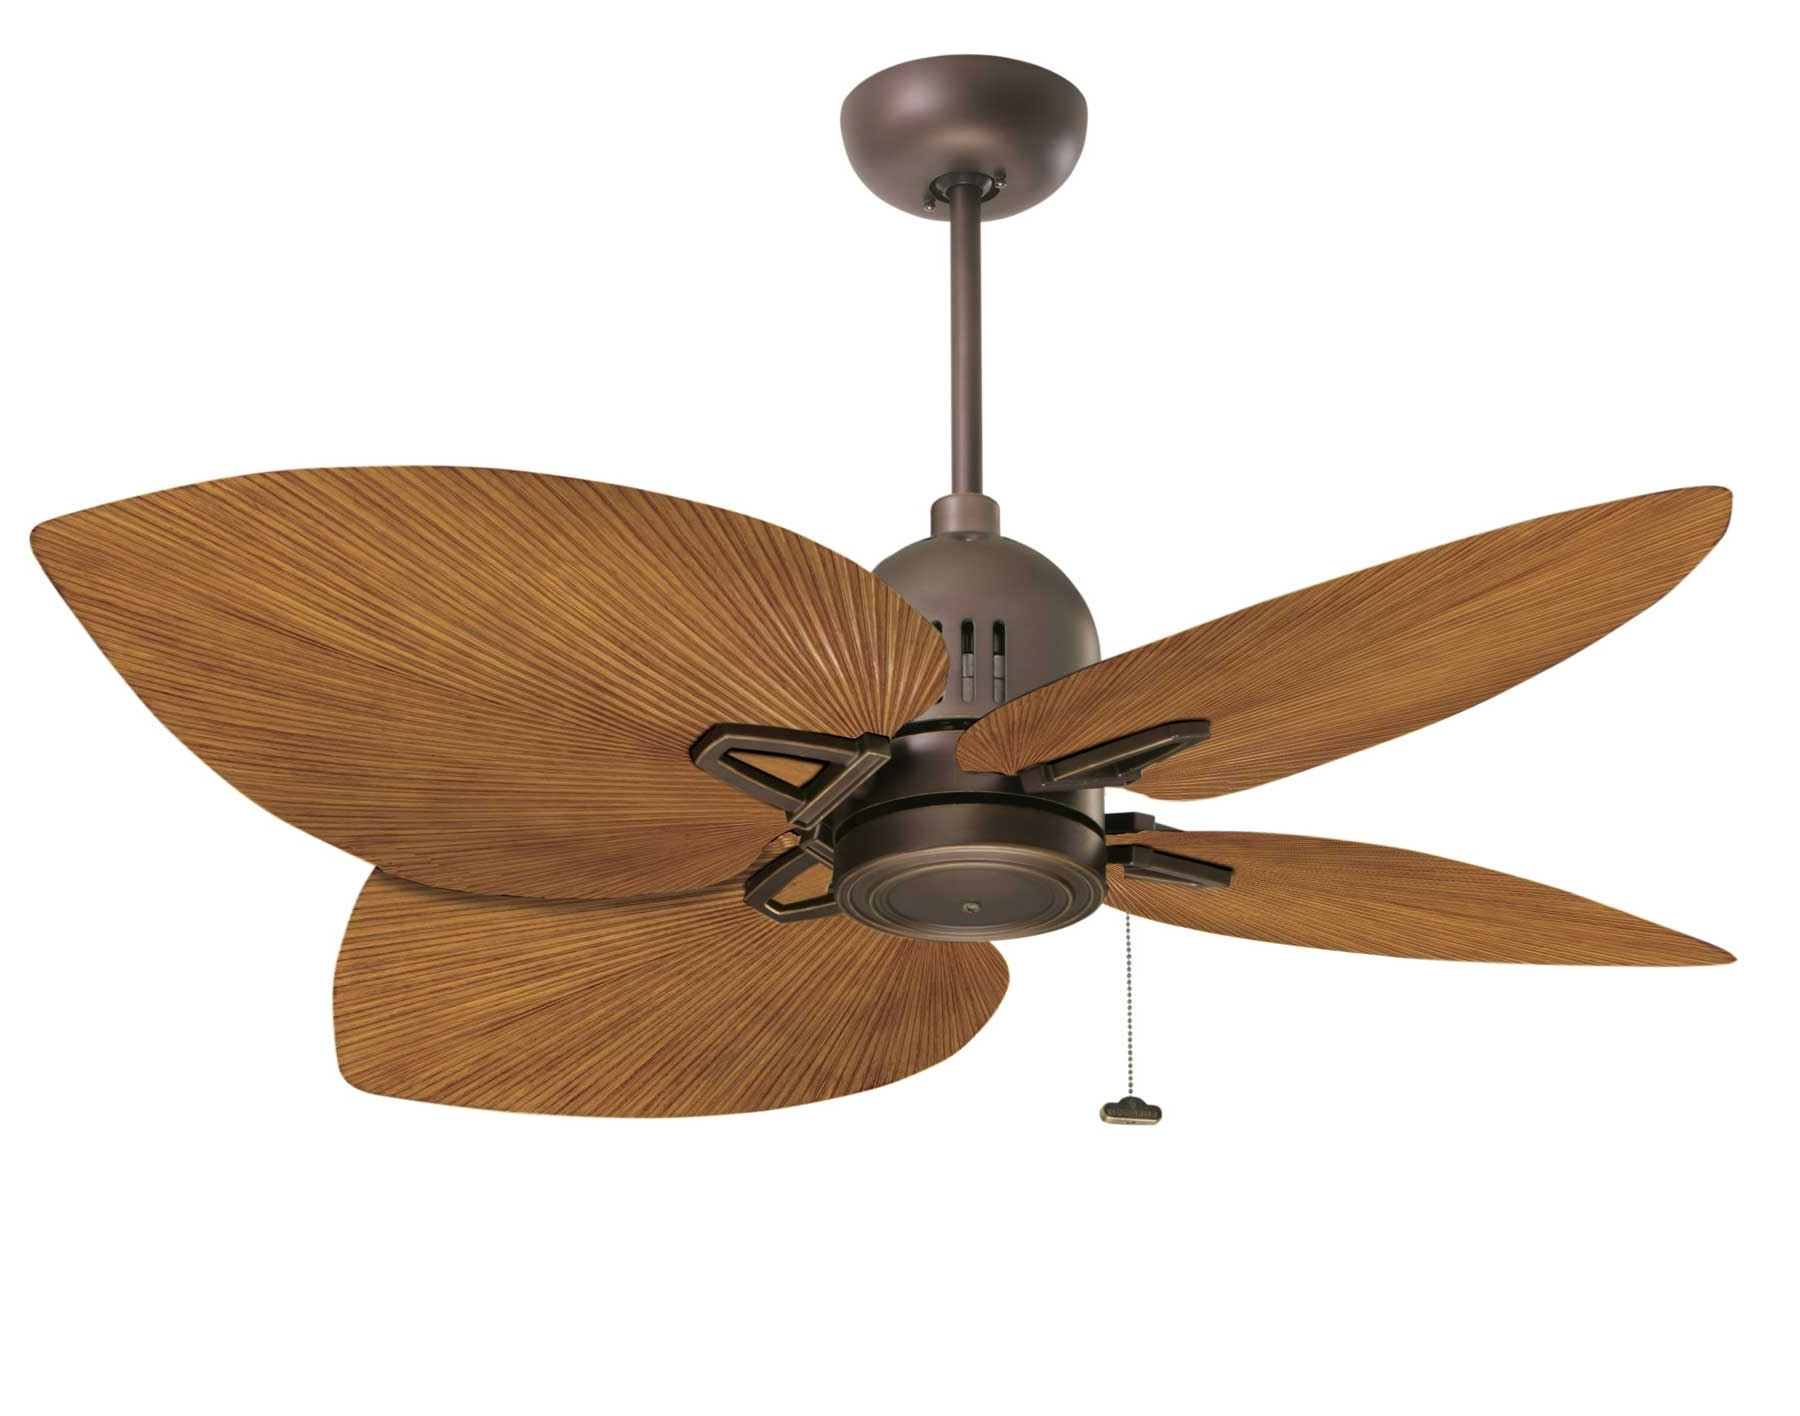 Outdoor Ceiling Fans With Covers Pertaining To Favorite Decor: Bring An Island Look Into Your Home With Cool Ceiling Fan (View 14 of 20)